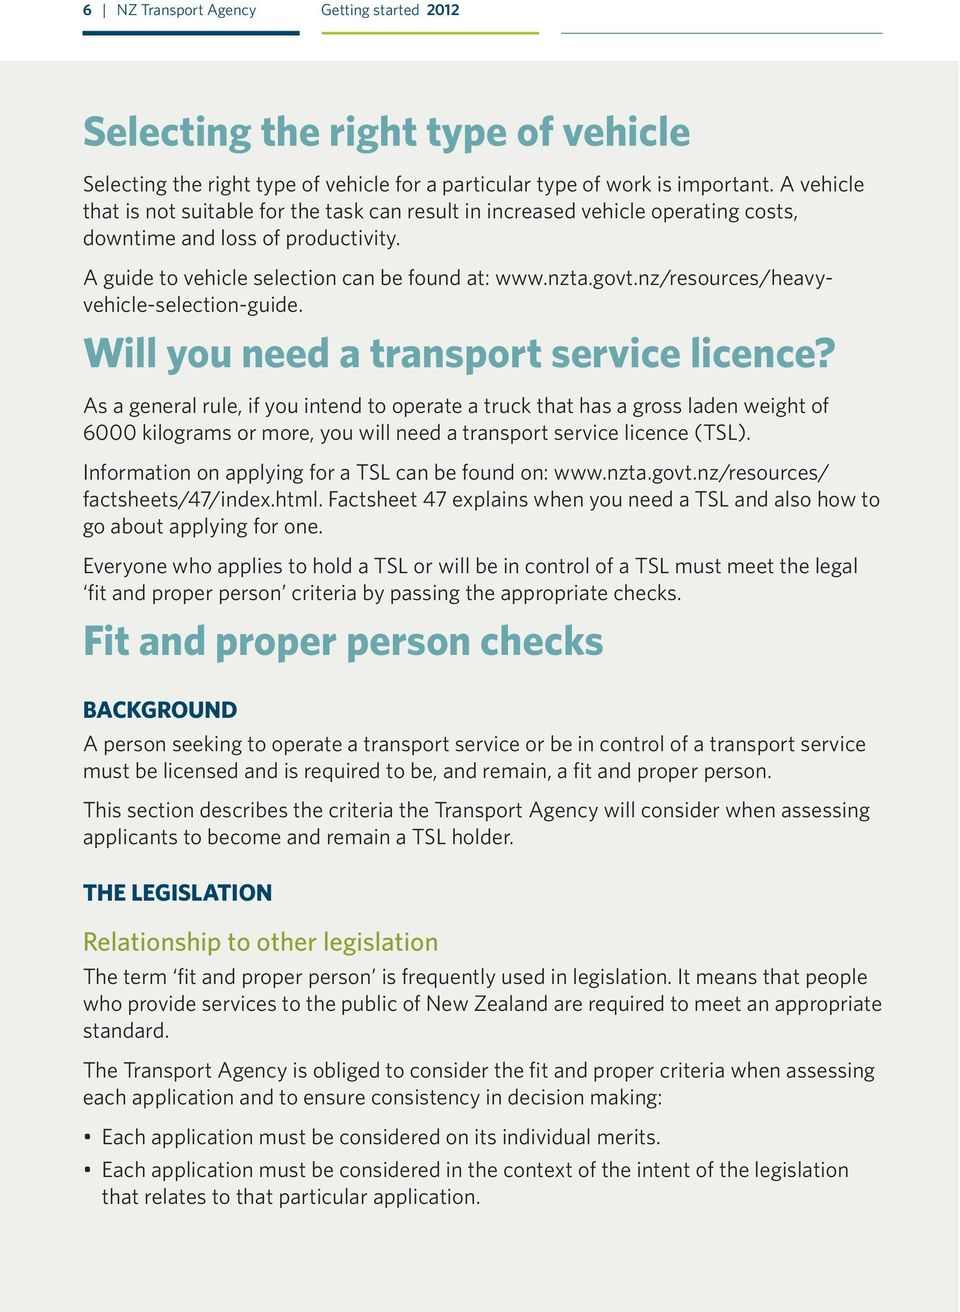 nz/resources/heavyvehicle-selection-guide. Will you need a transport service licence?